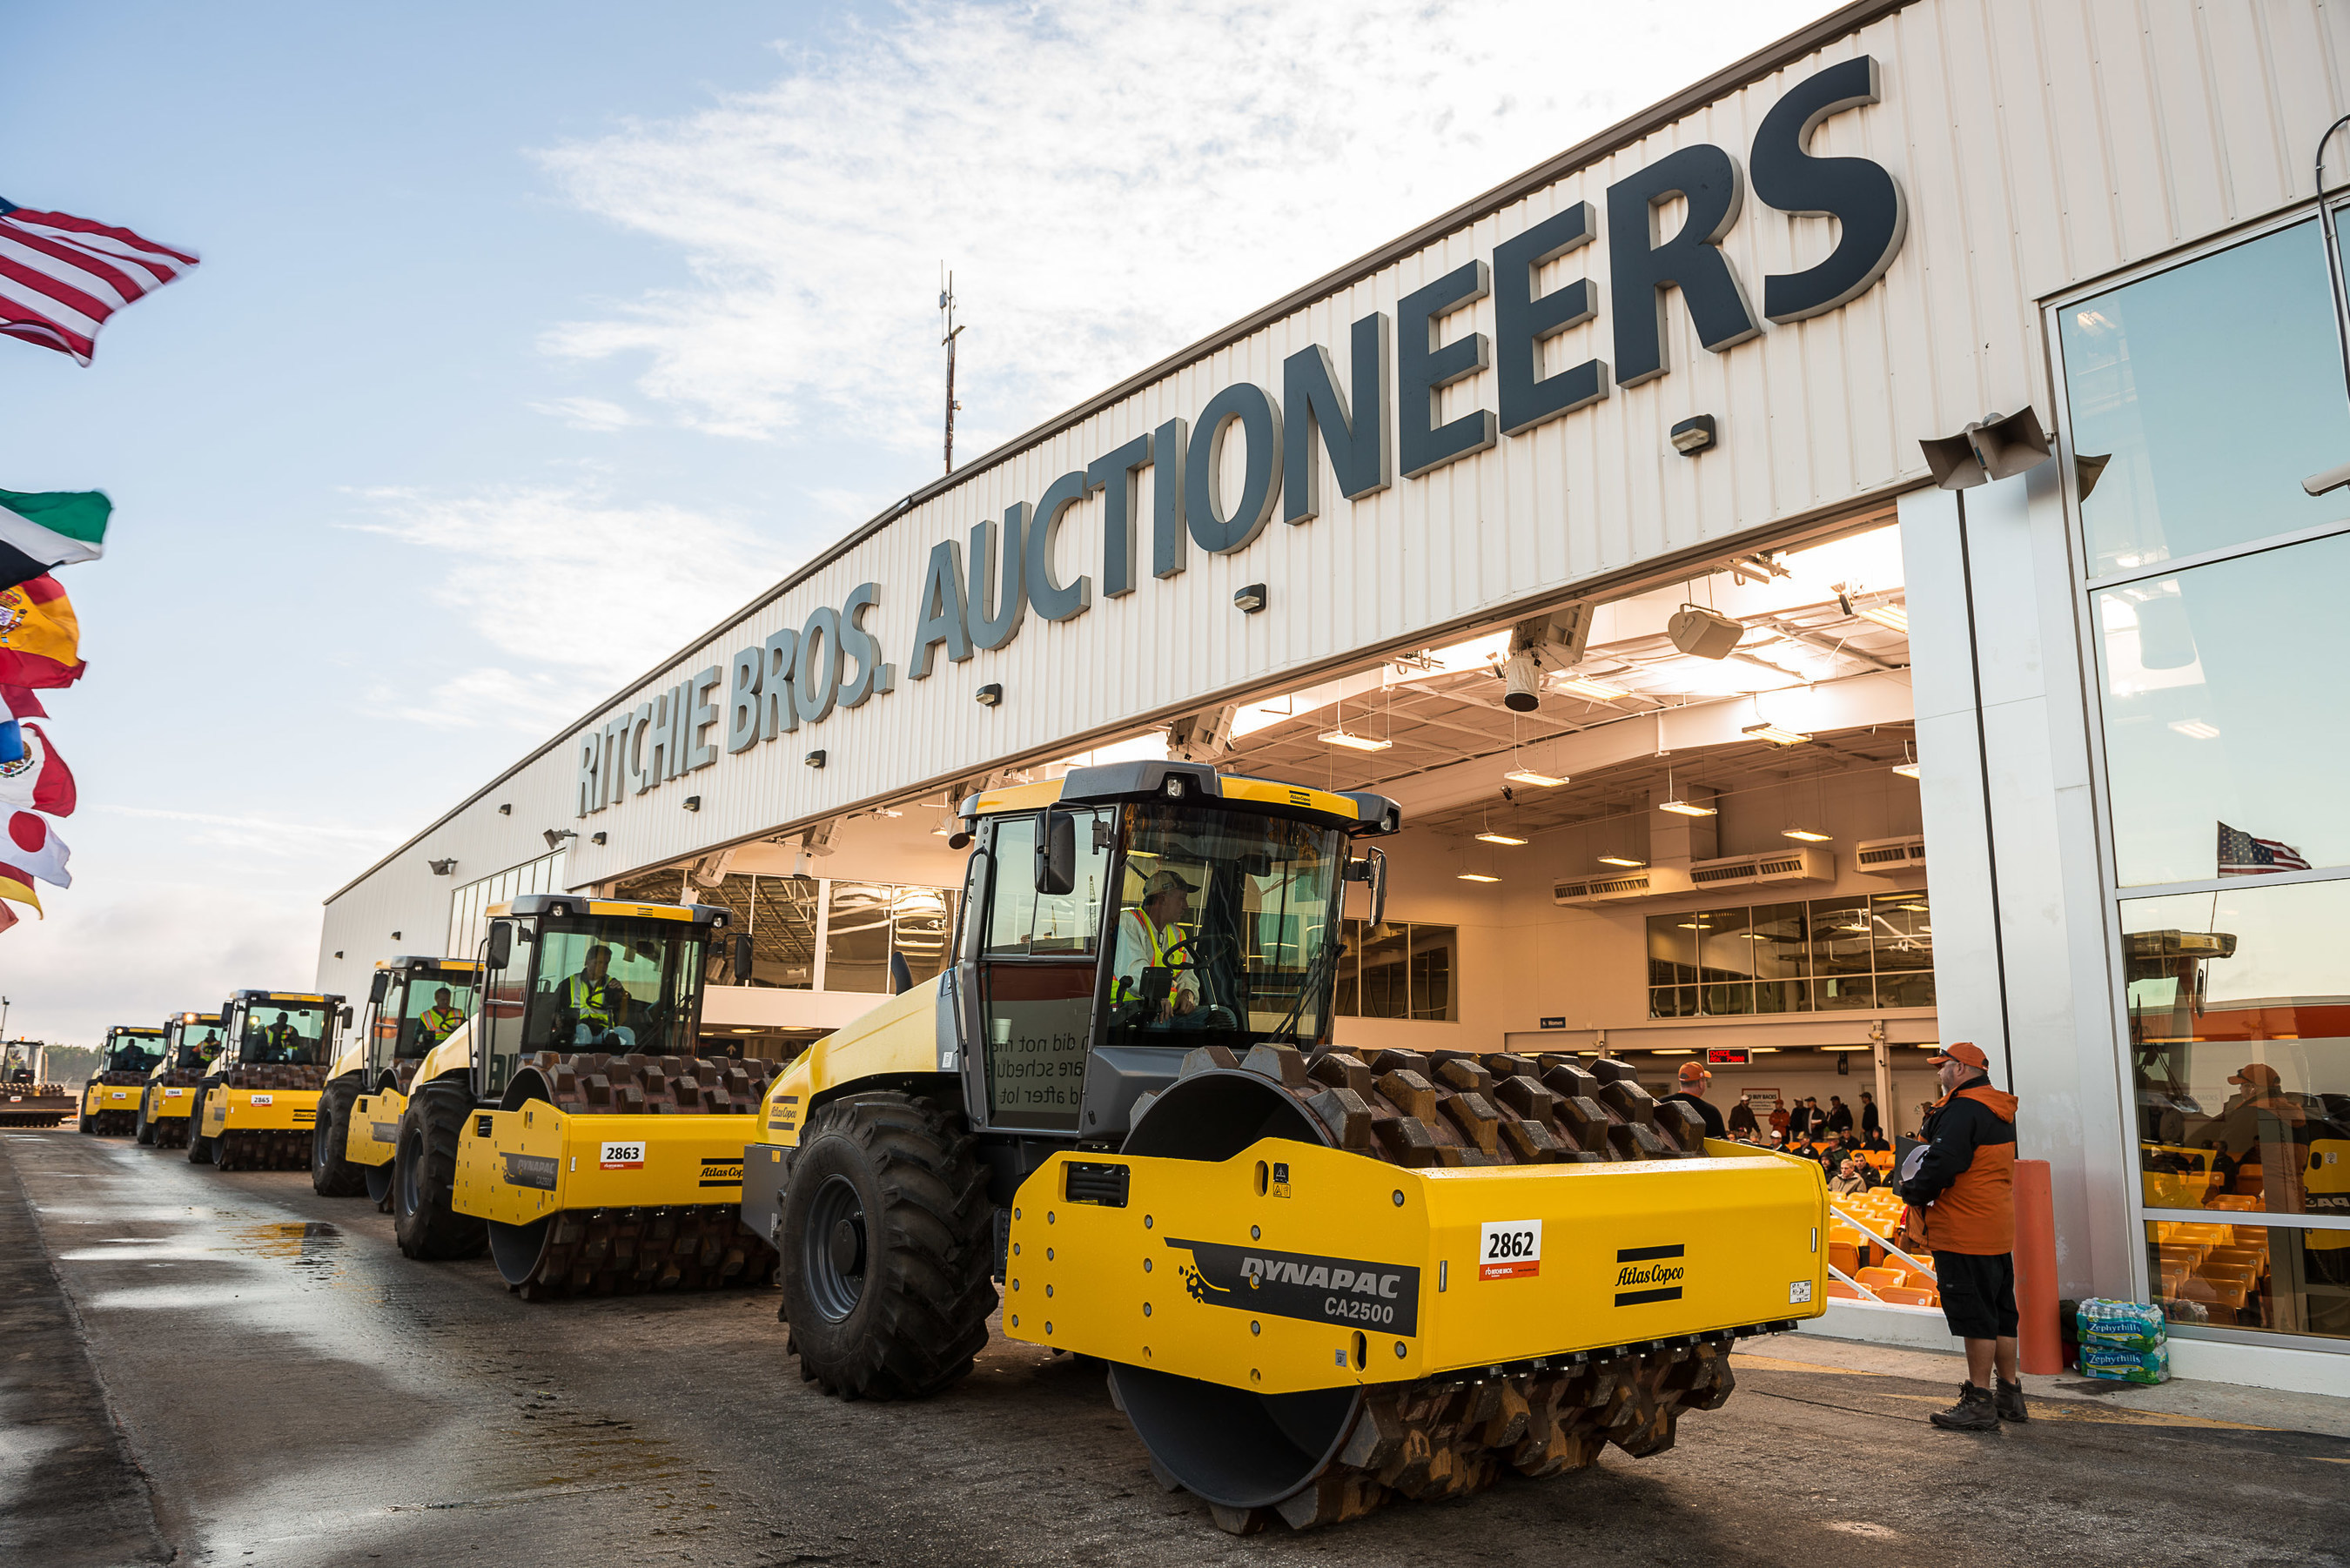 10,000+ items: Ritchie Bros. auction offers largest selection of equipment in Florida